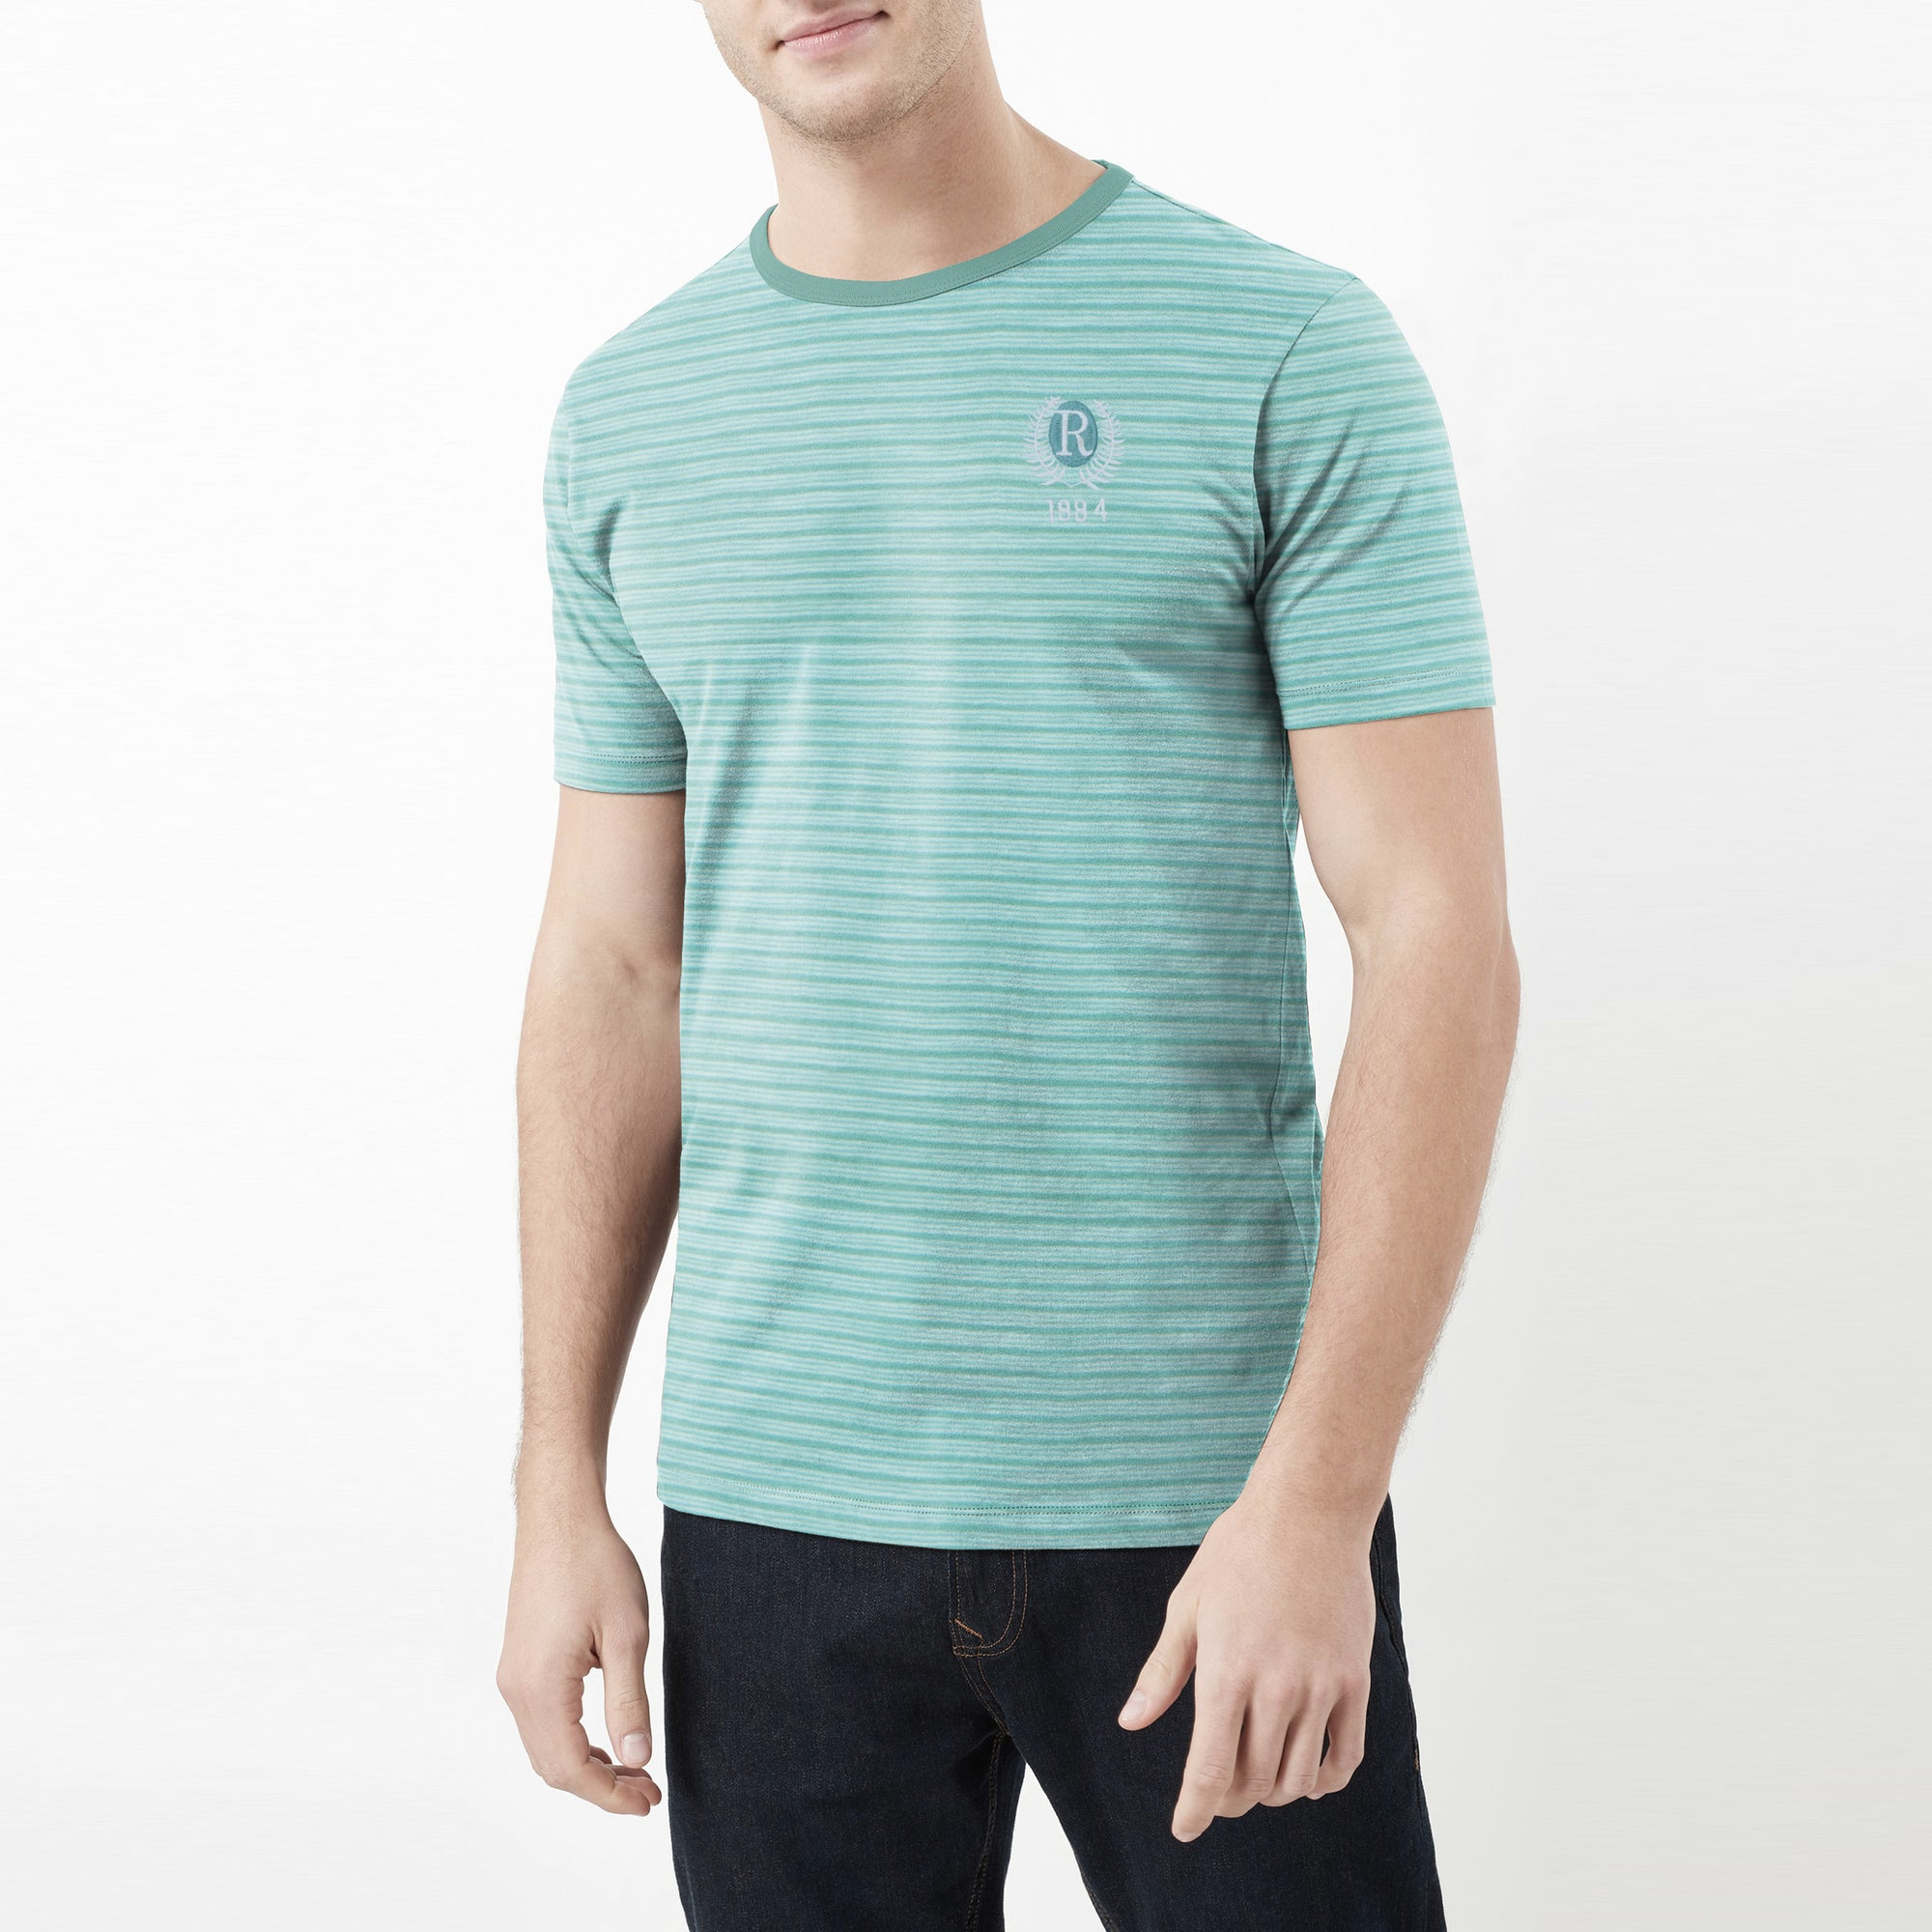 Fat Face Crew Neck Half Sleeve Tee Shirt For Men-Green Stripe-BE8122